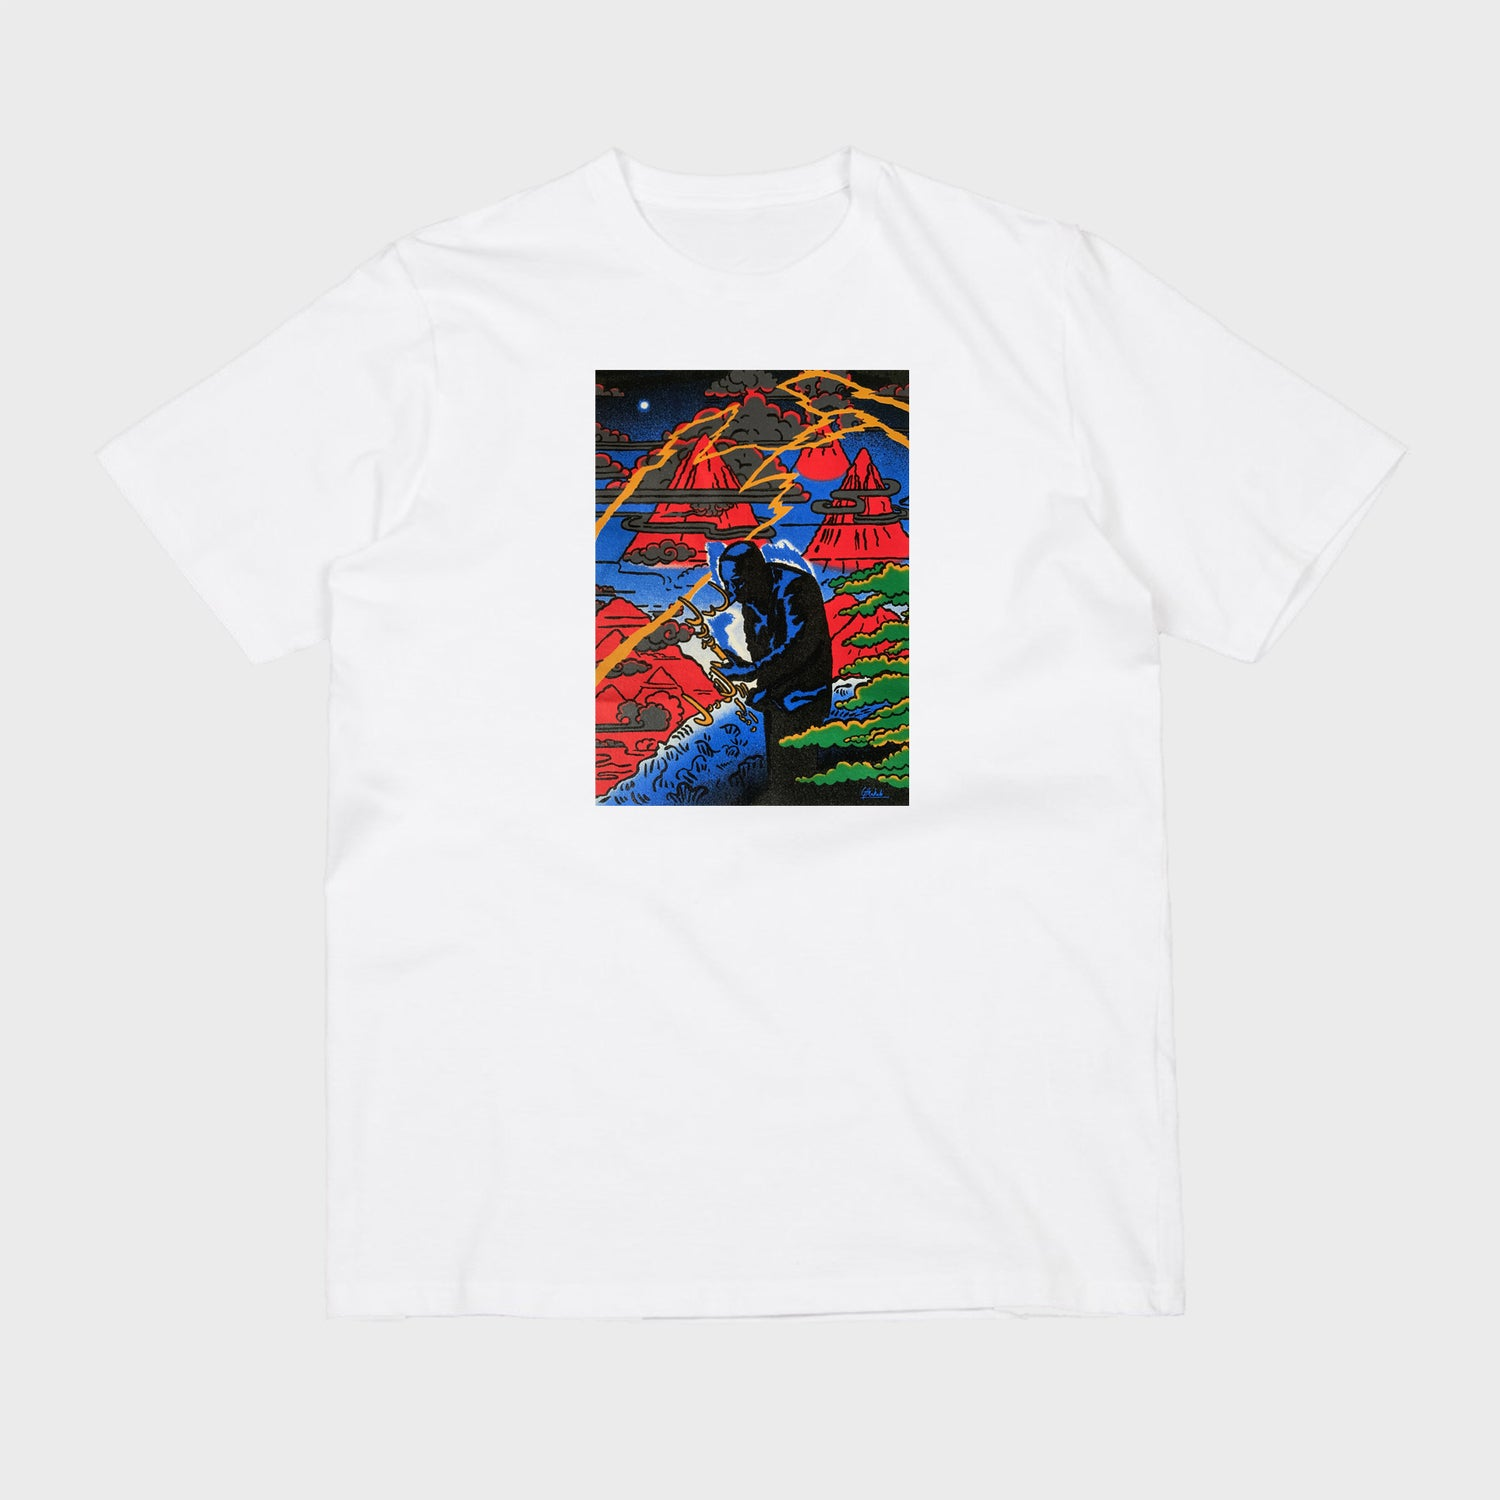 Image of Coltrane (White short sleeve t-shirt)